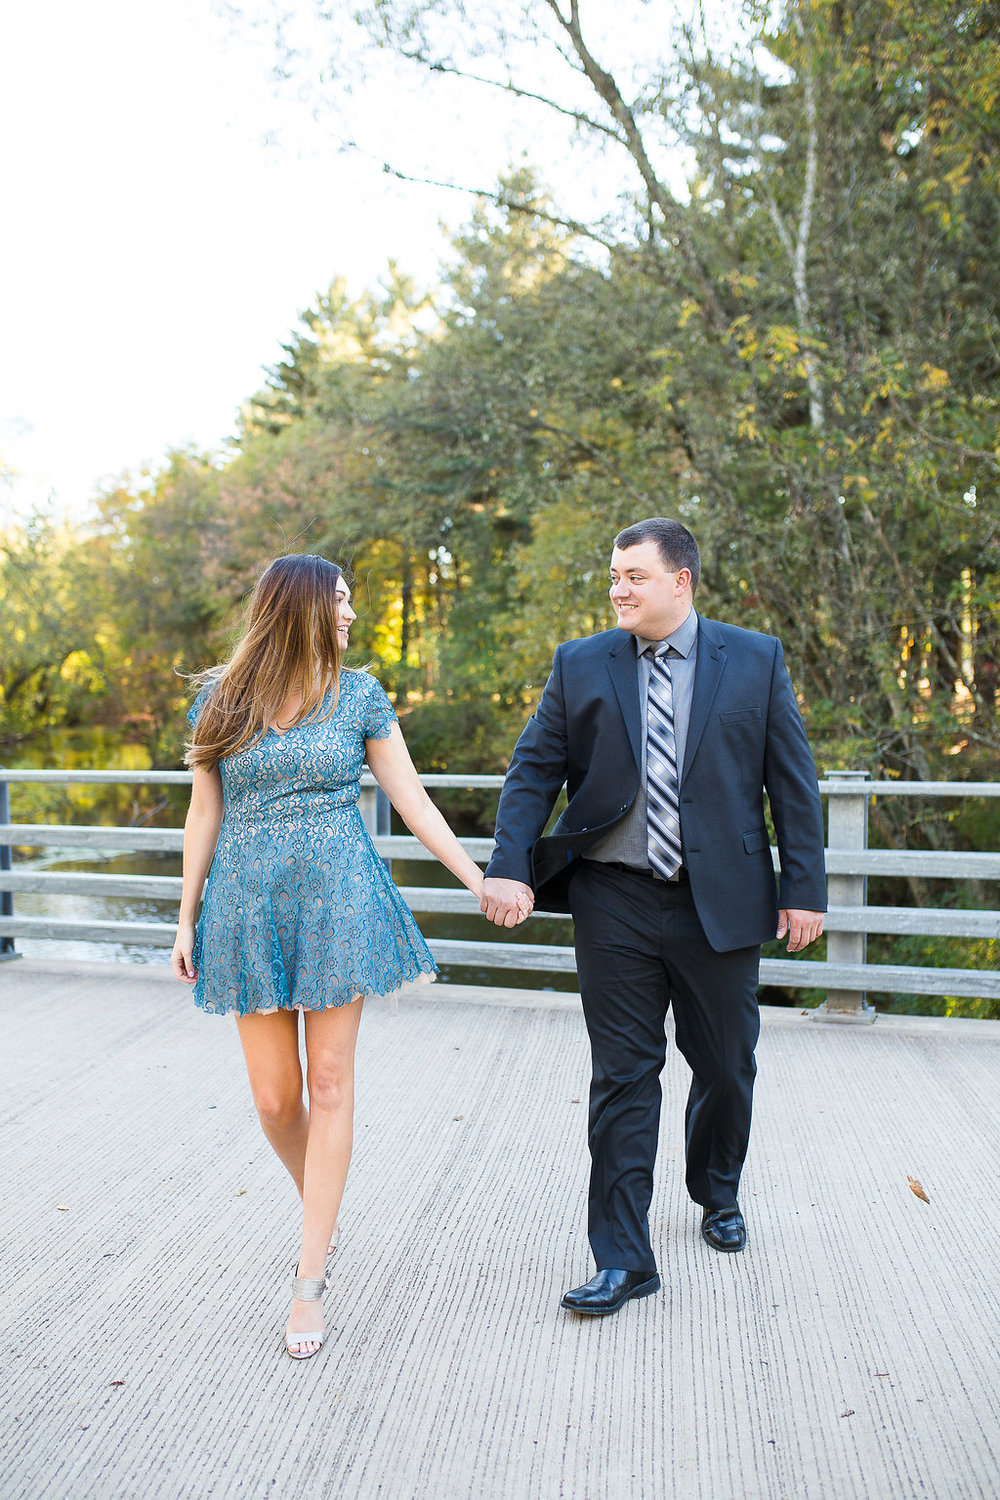 Walking Engagement Session Poses